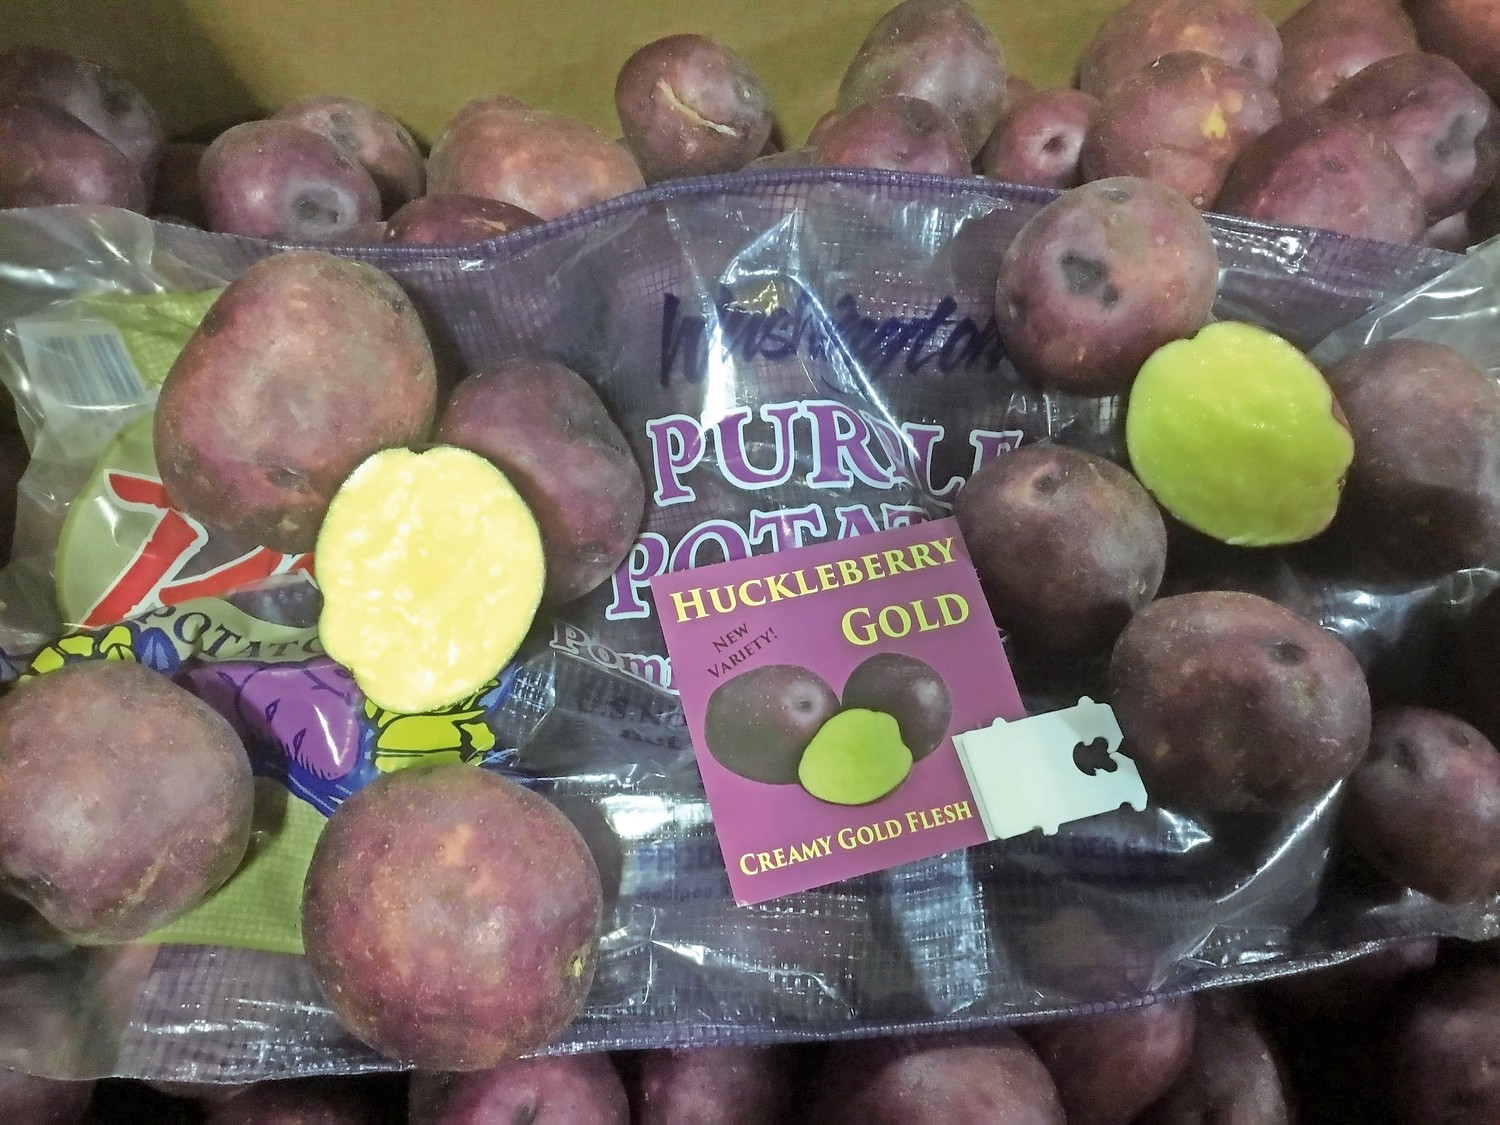 Have you ever imagined eating purple potatoes? Well, now you can, including this Huckleberry Gold variety from Race-West Co., of Summit, Pennsylvania.